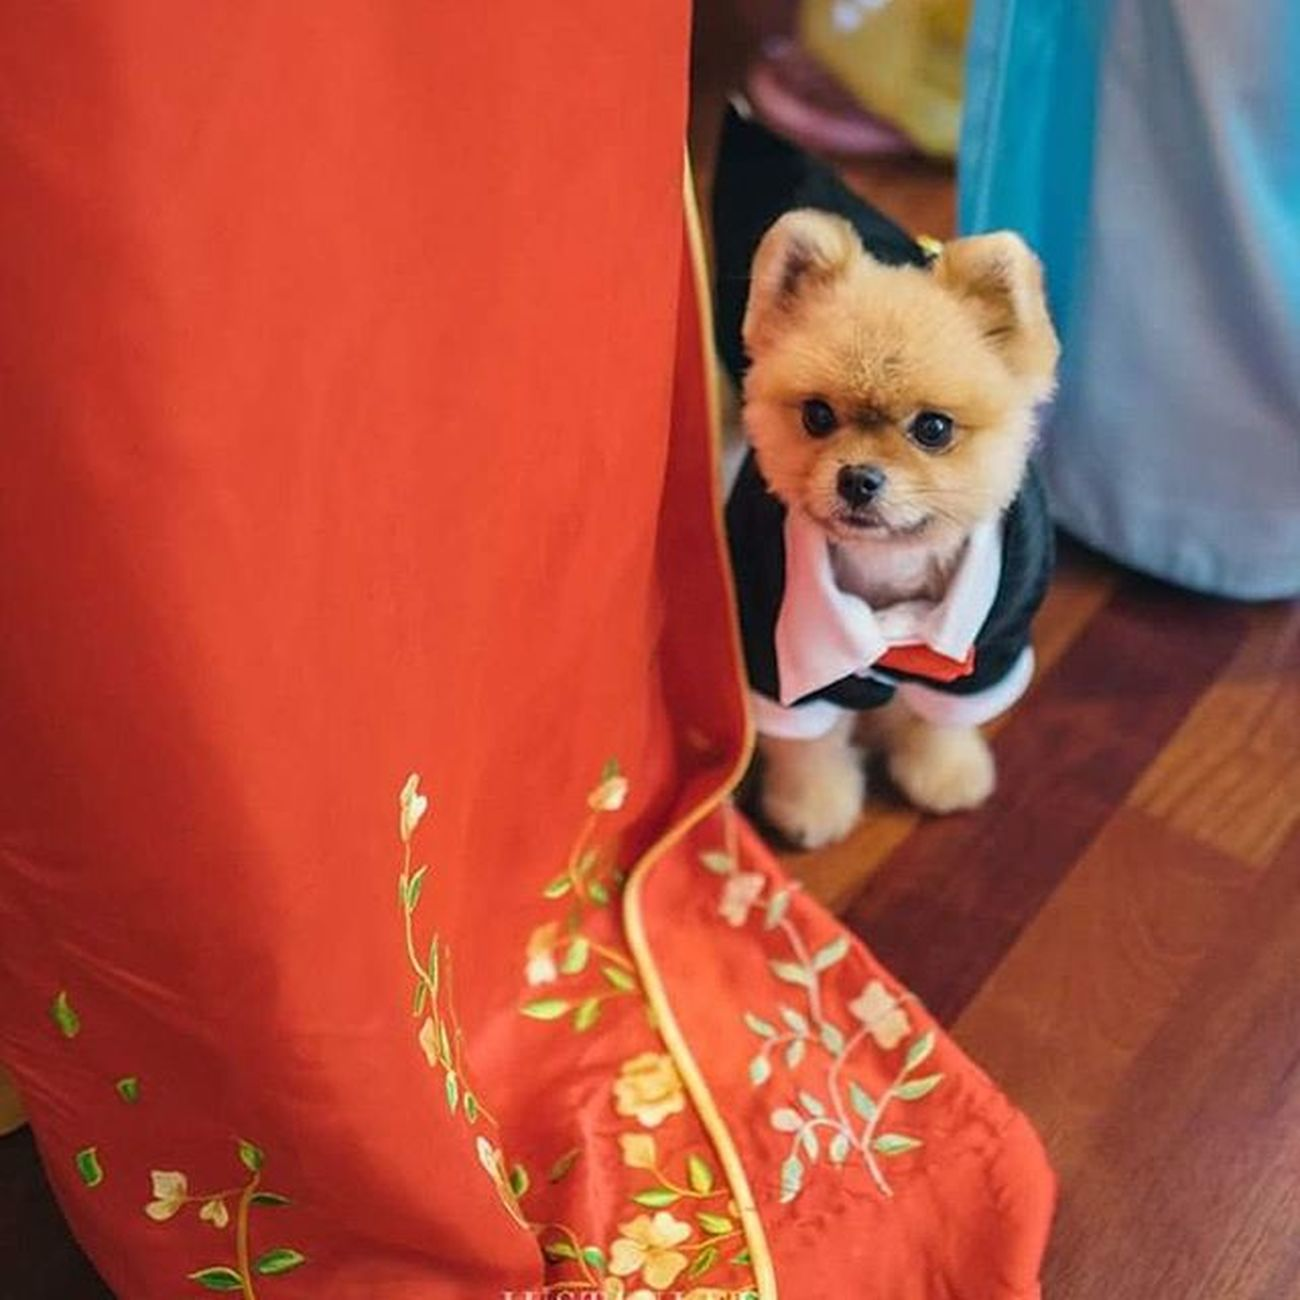 Not a stuffed animal......! This handsome dog had to maneuver his way through the crowd of a busy wedding morning Justinleeportland Oregonbridemag Junebugweddings Portlandphotographer Portlandweddingphotographer Portlandwedding Pdxweddings Oregonwedding Oregonweddingphotographer Portlandbride Portlandengagement Nwweddings Nwbrides Portlandbrideandgroom Oregonbride Justinleeportland Puppy Pomeranian Dogs Animaladdicts